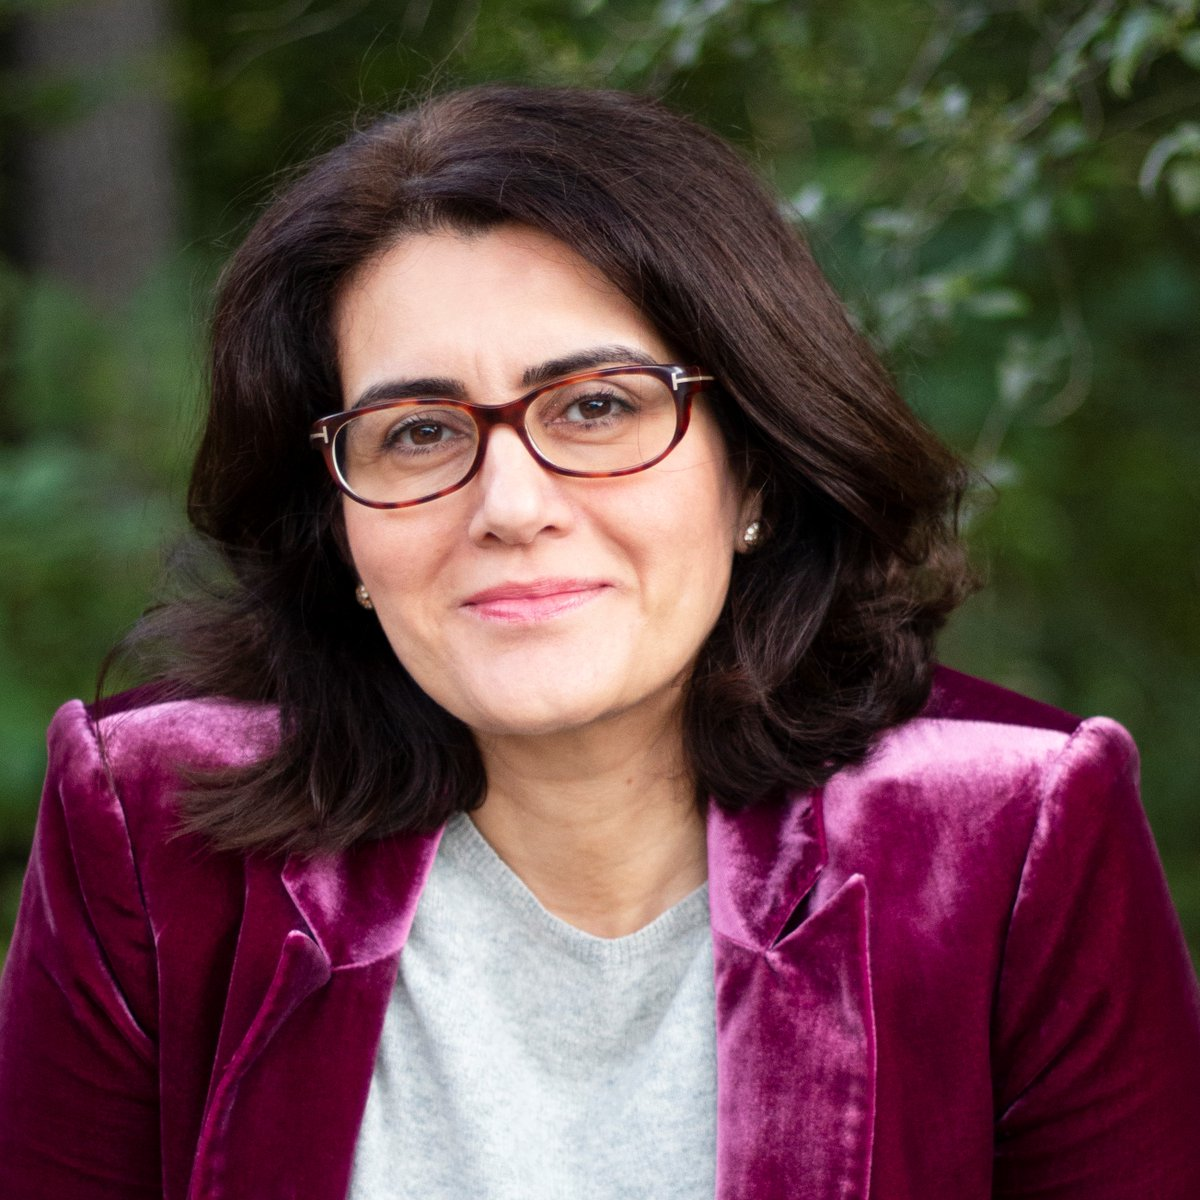 For #ArabAmericanHeritageMonth, the MEPC is exploring the history, culture & contributions of the Arab diaspora across the US. Our latest interview w/Dr. Diana Abouali, director of the Arab American National Museum is here: https://t.co/3pmaZjvdxU @DianaAbouali @ACCESS1971 https://t.co/4I4pKrO4d2